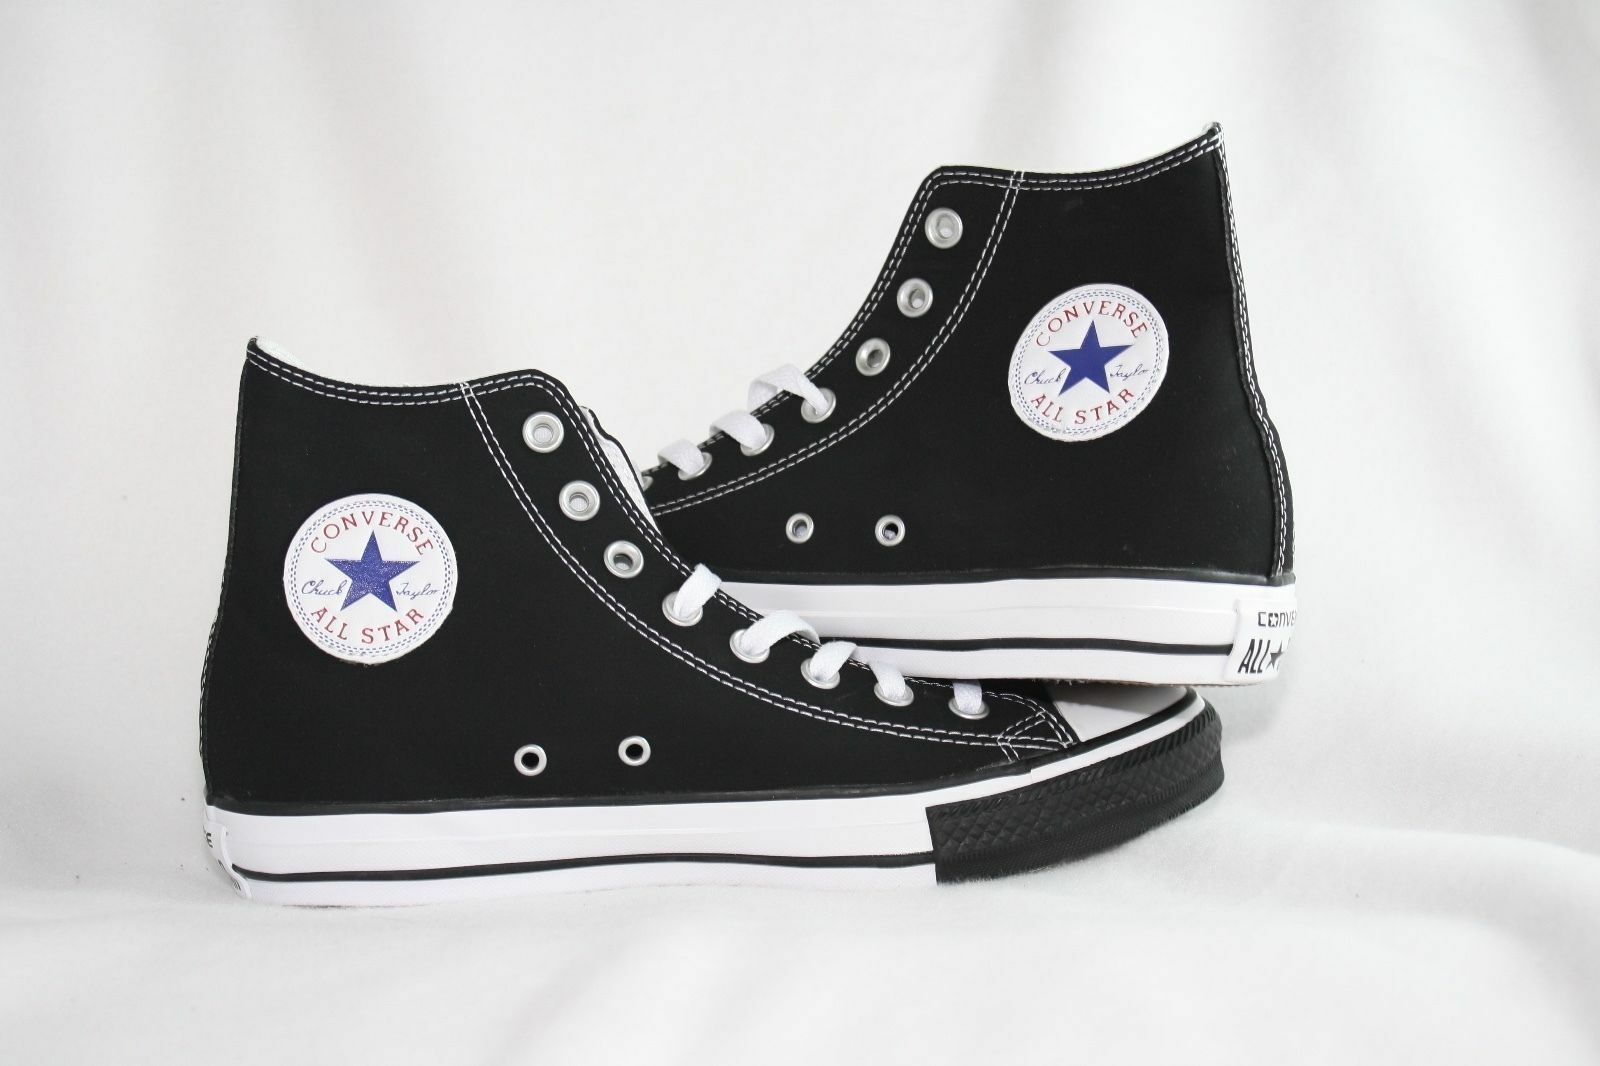 CONVERSE ALL STAR CHUCK TAYLOR HI SUEDE Uomo SHOES BLAK FX 114416F SIZE 10.5 NEW